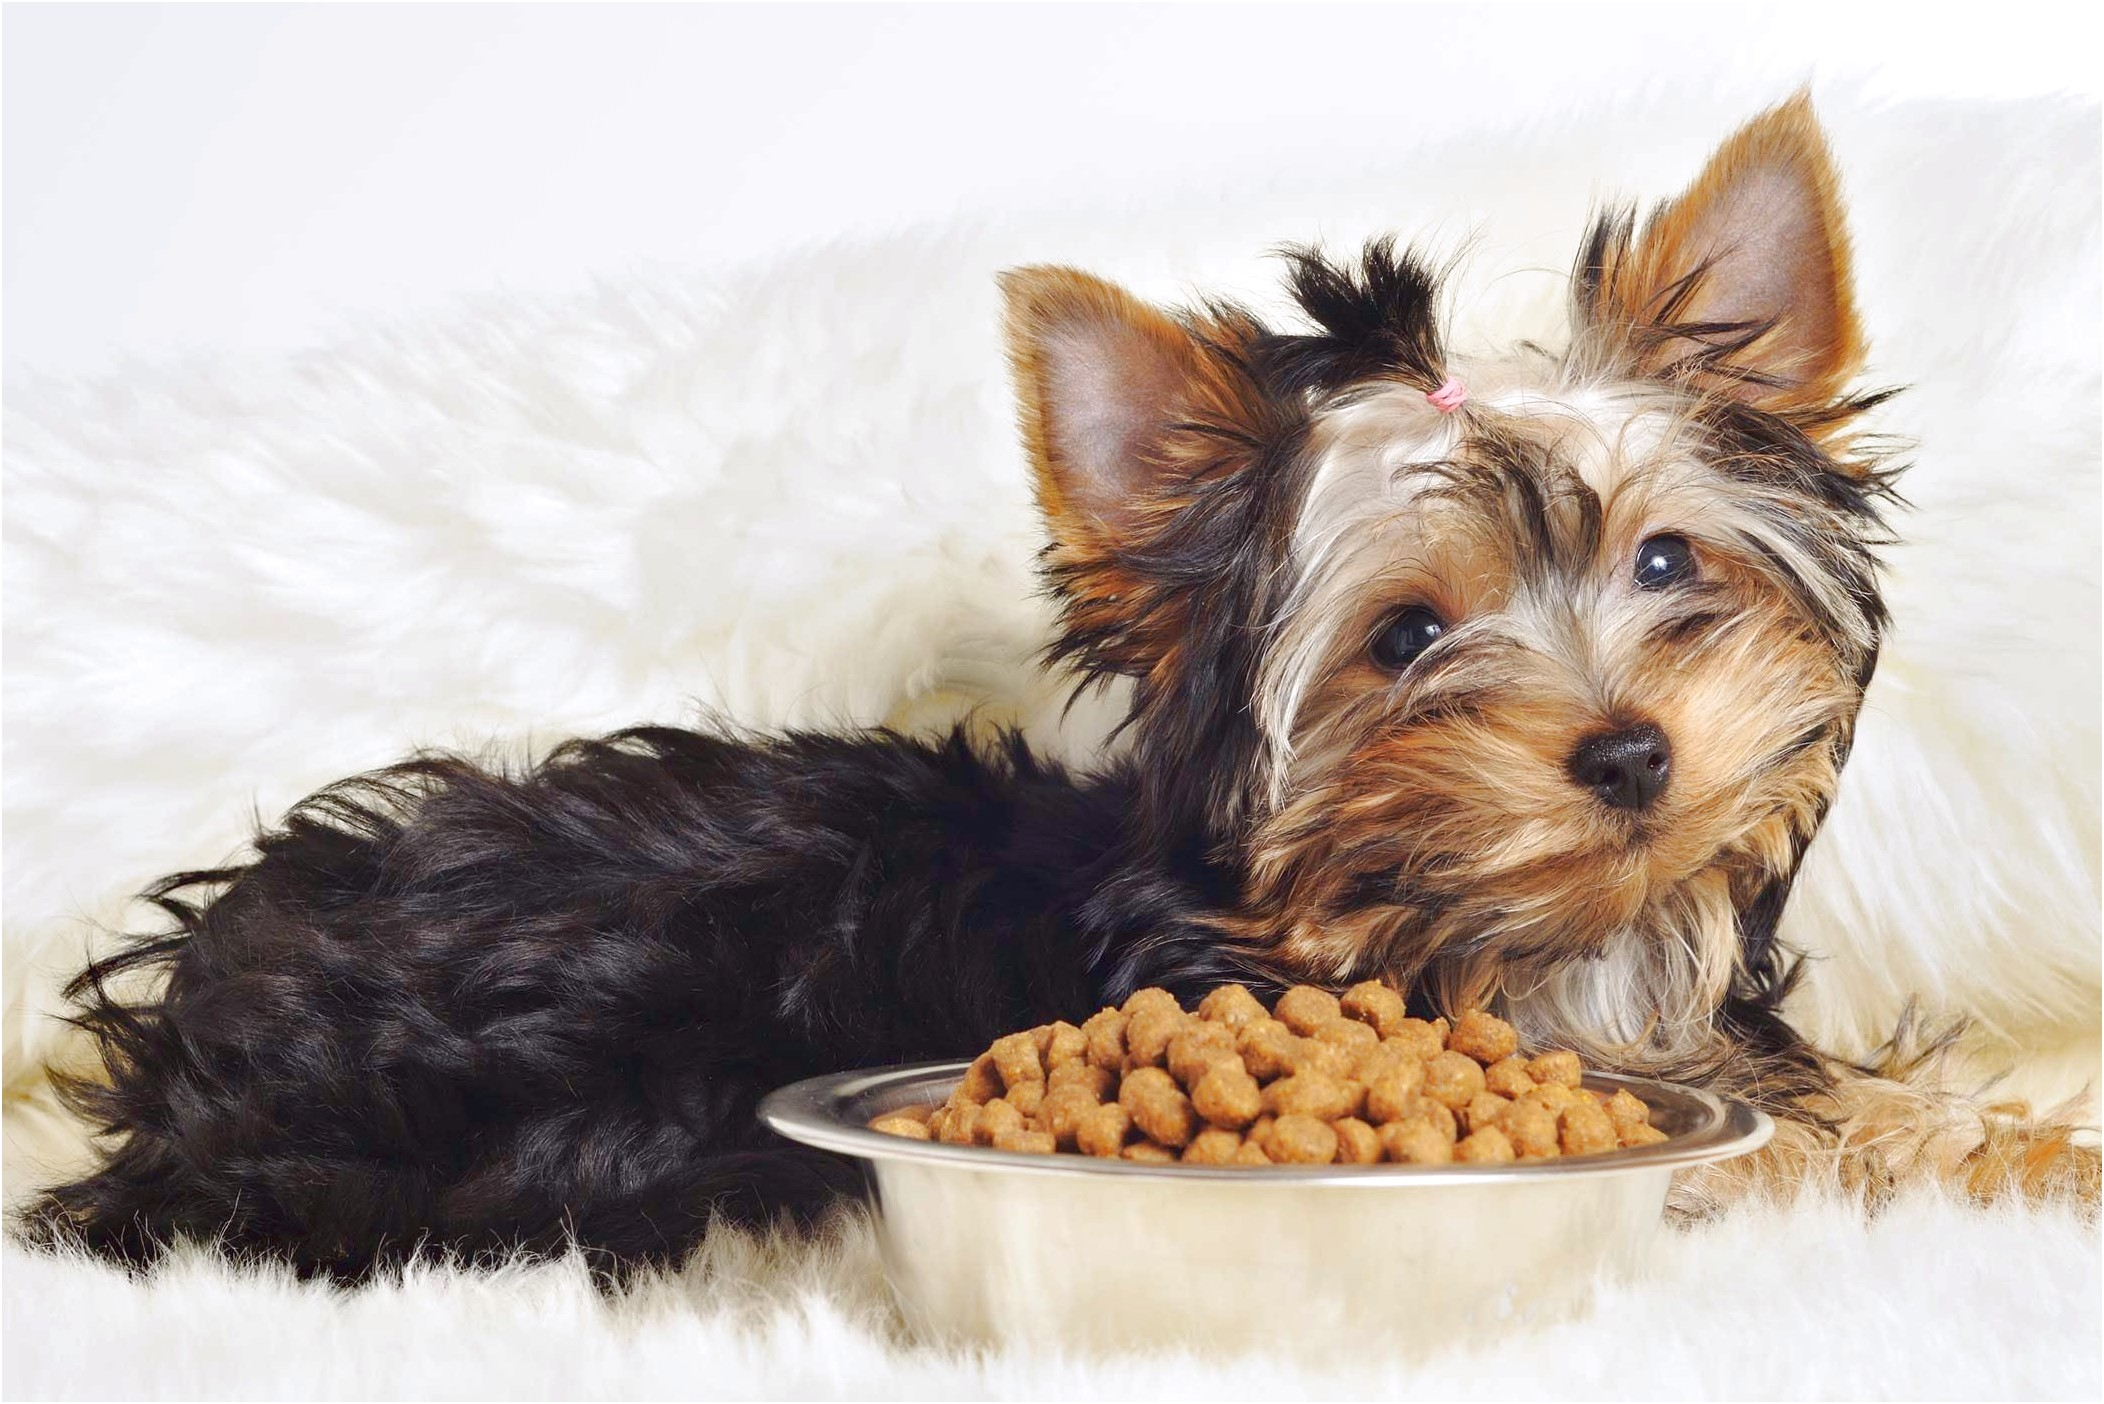 yorkshire terrier puppy throwing up